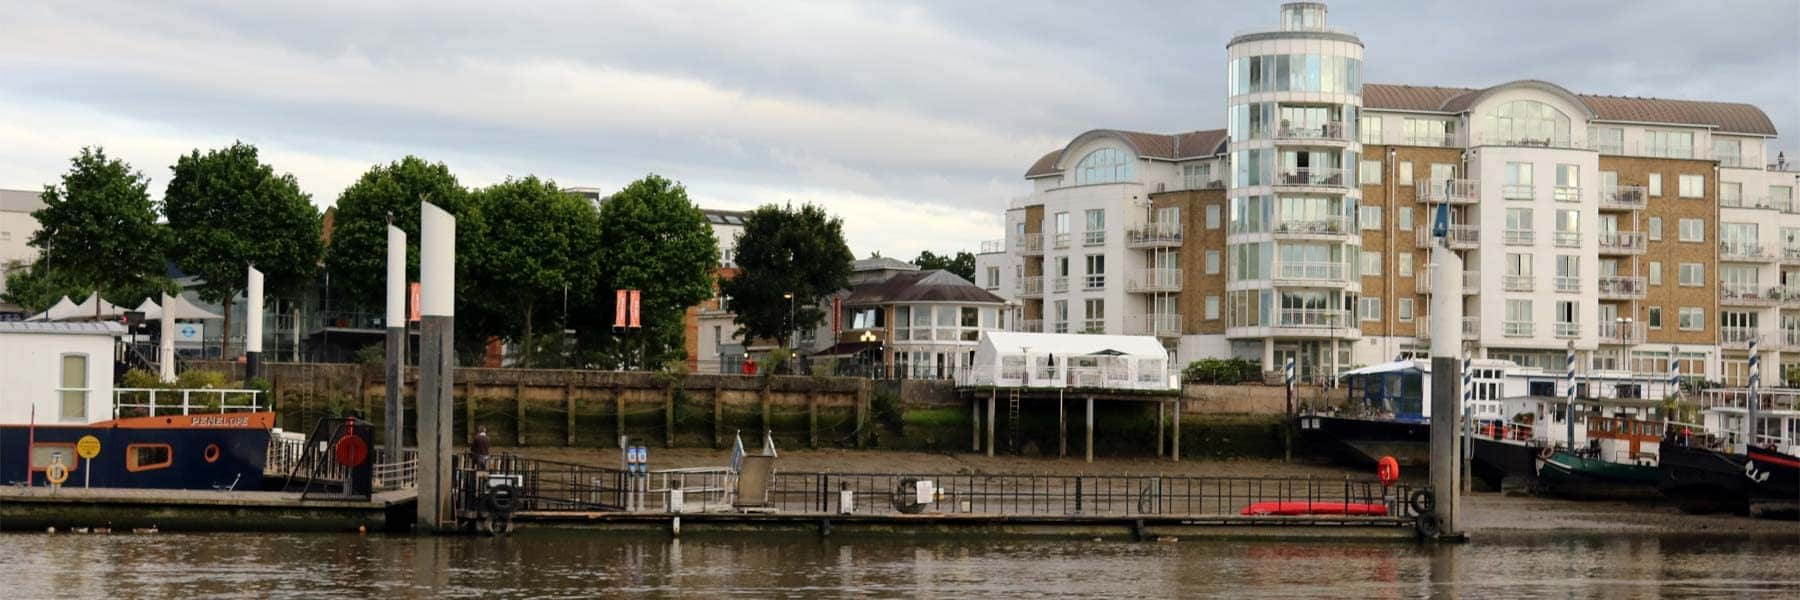 Wandsworth Riverside Quarter Pier